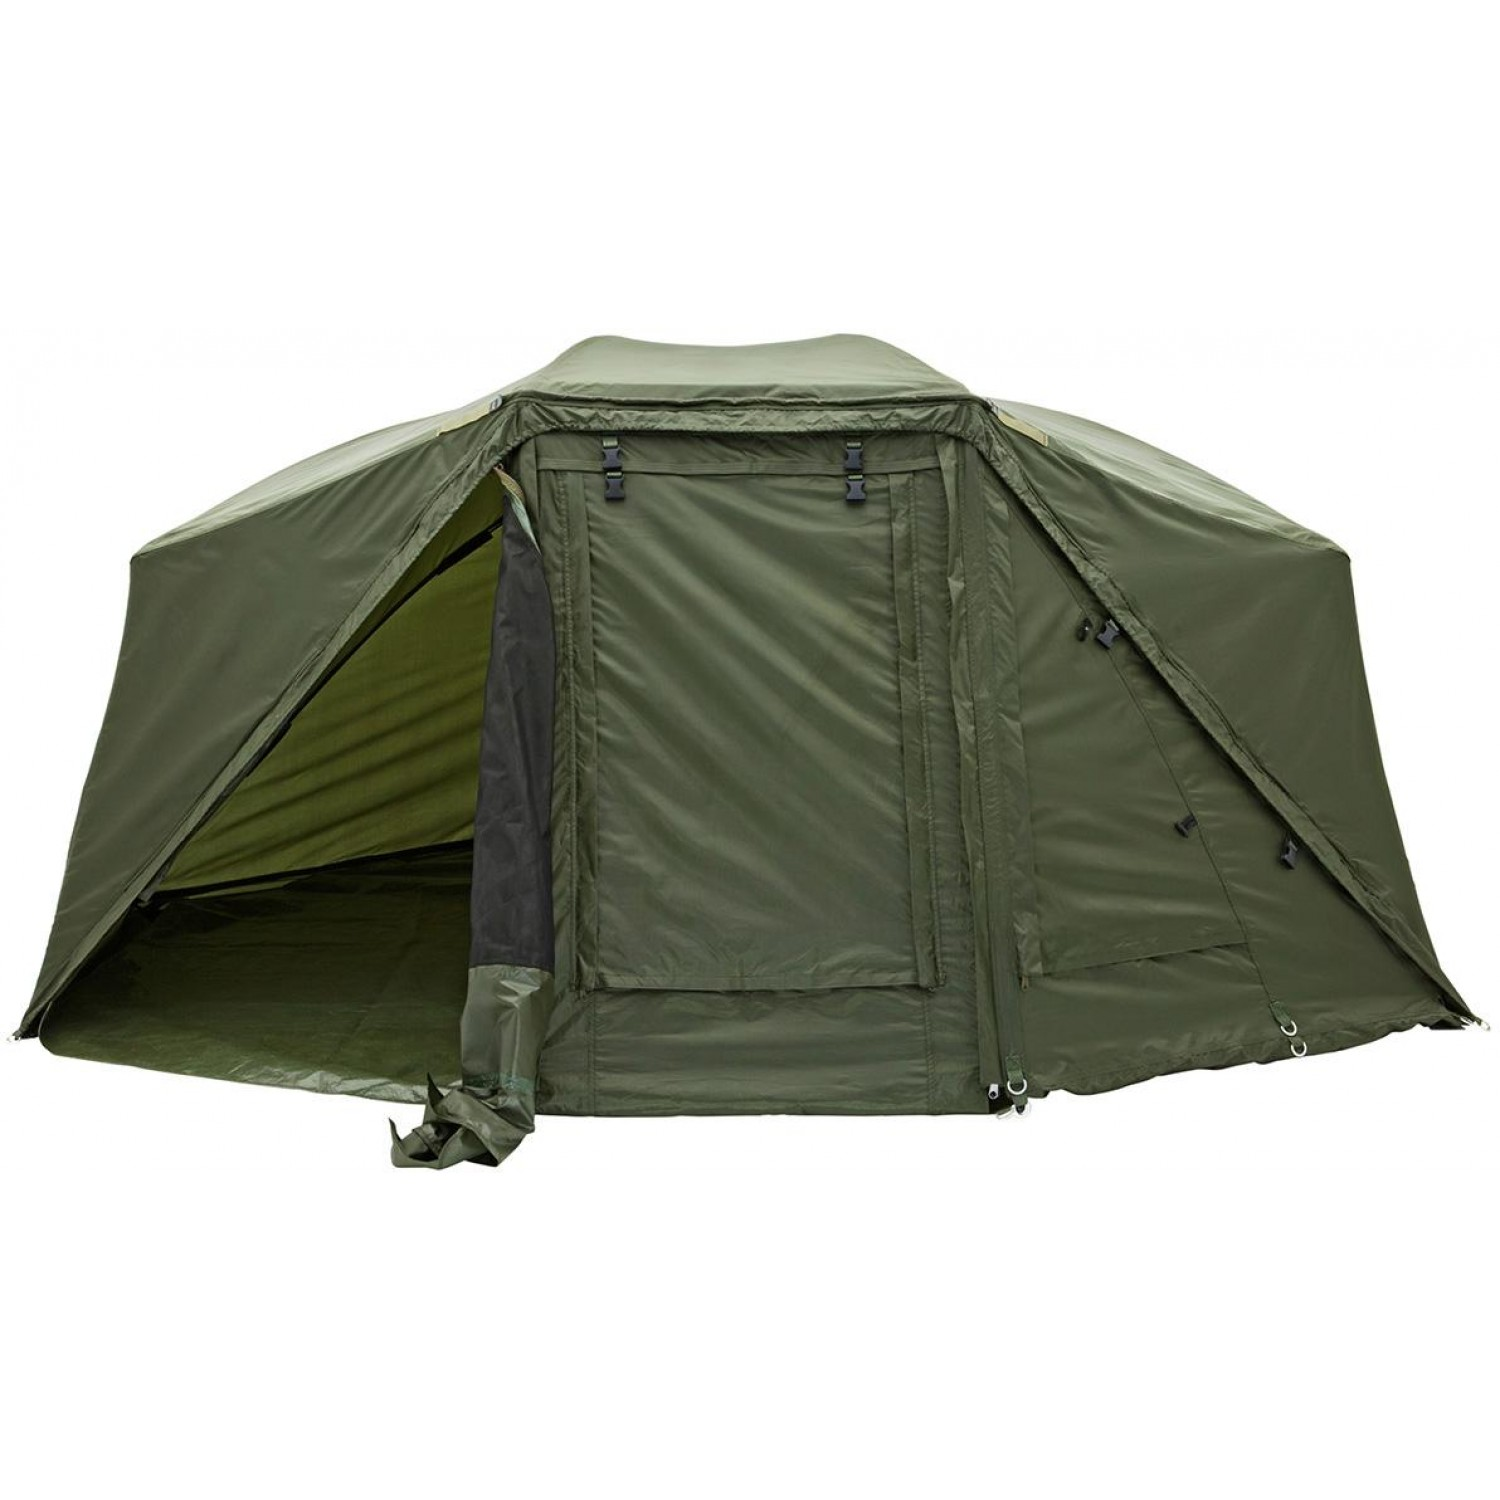 DAM MAD Brolly System Plus